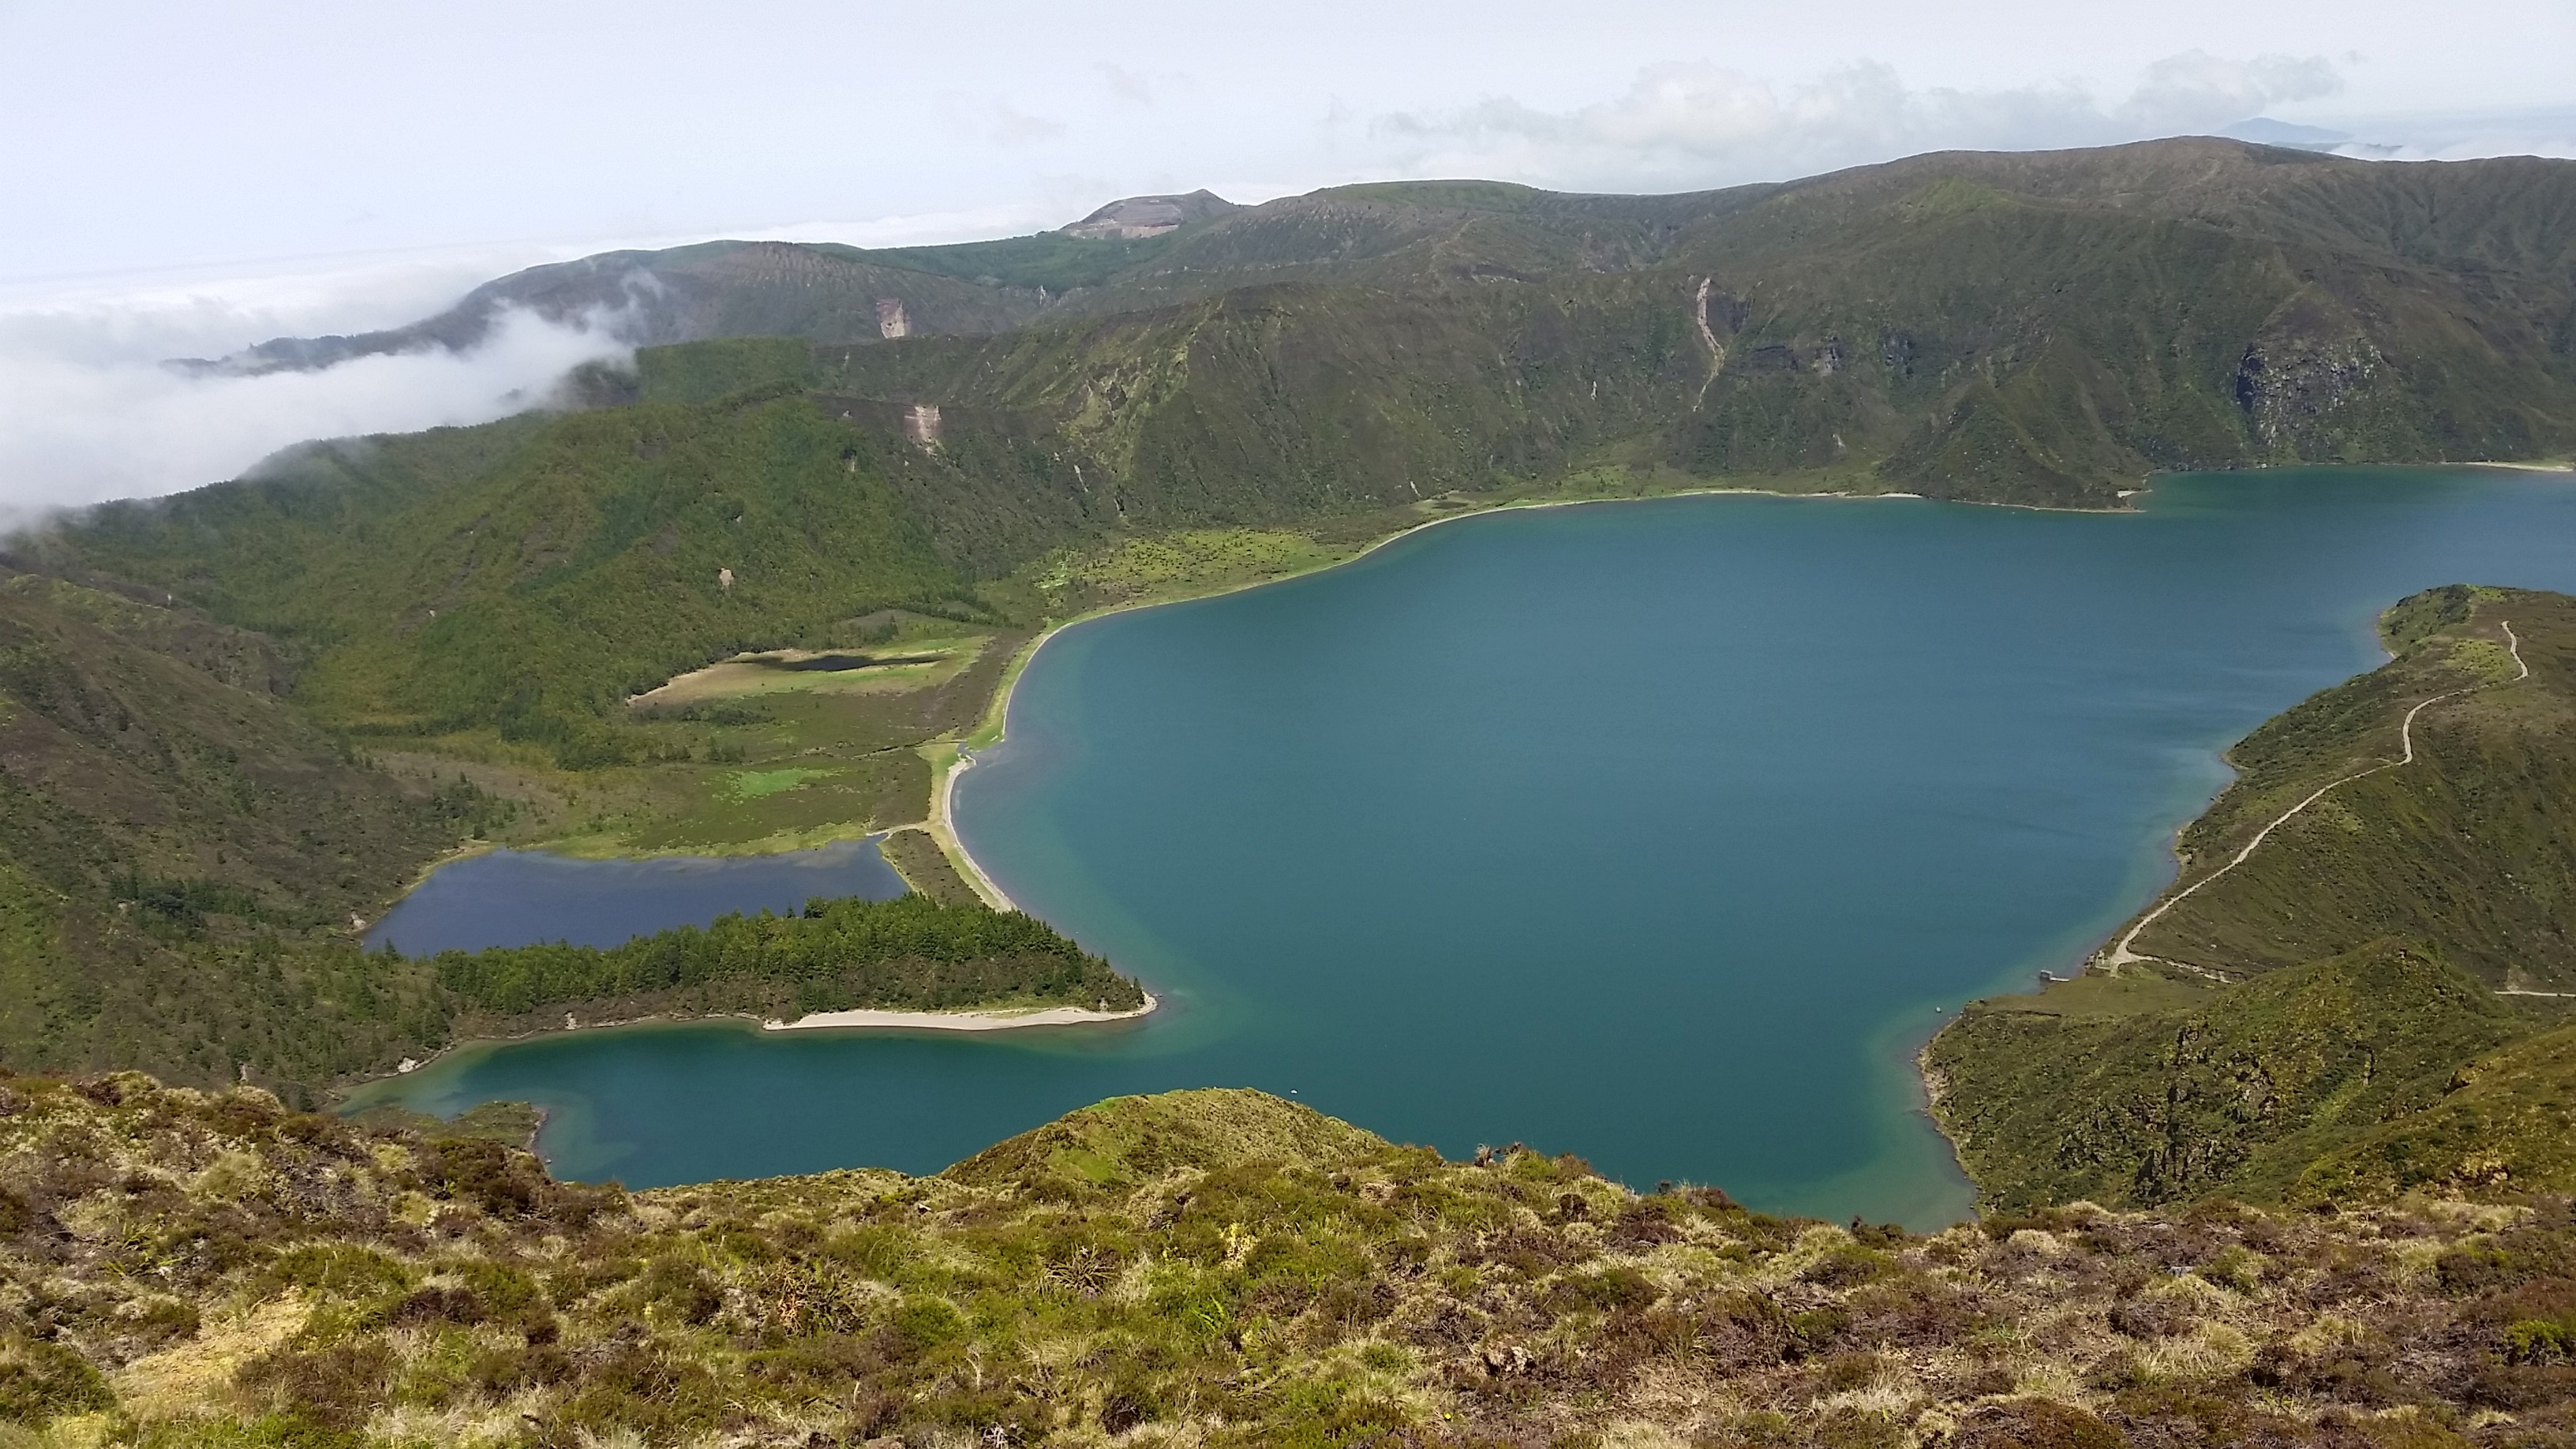 Top of the Fire Lake (Pico da Barrosa) 947 meters/3107 feet